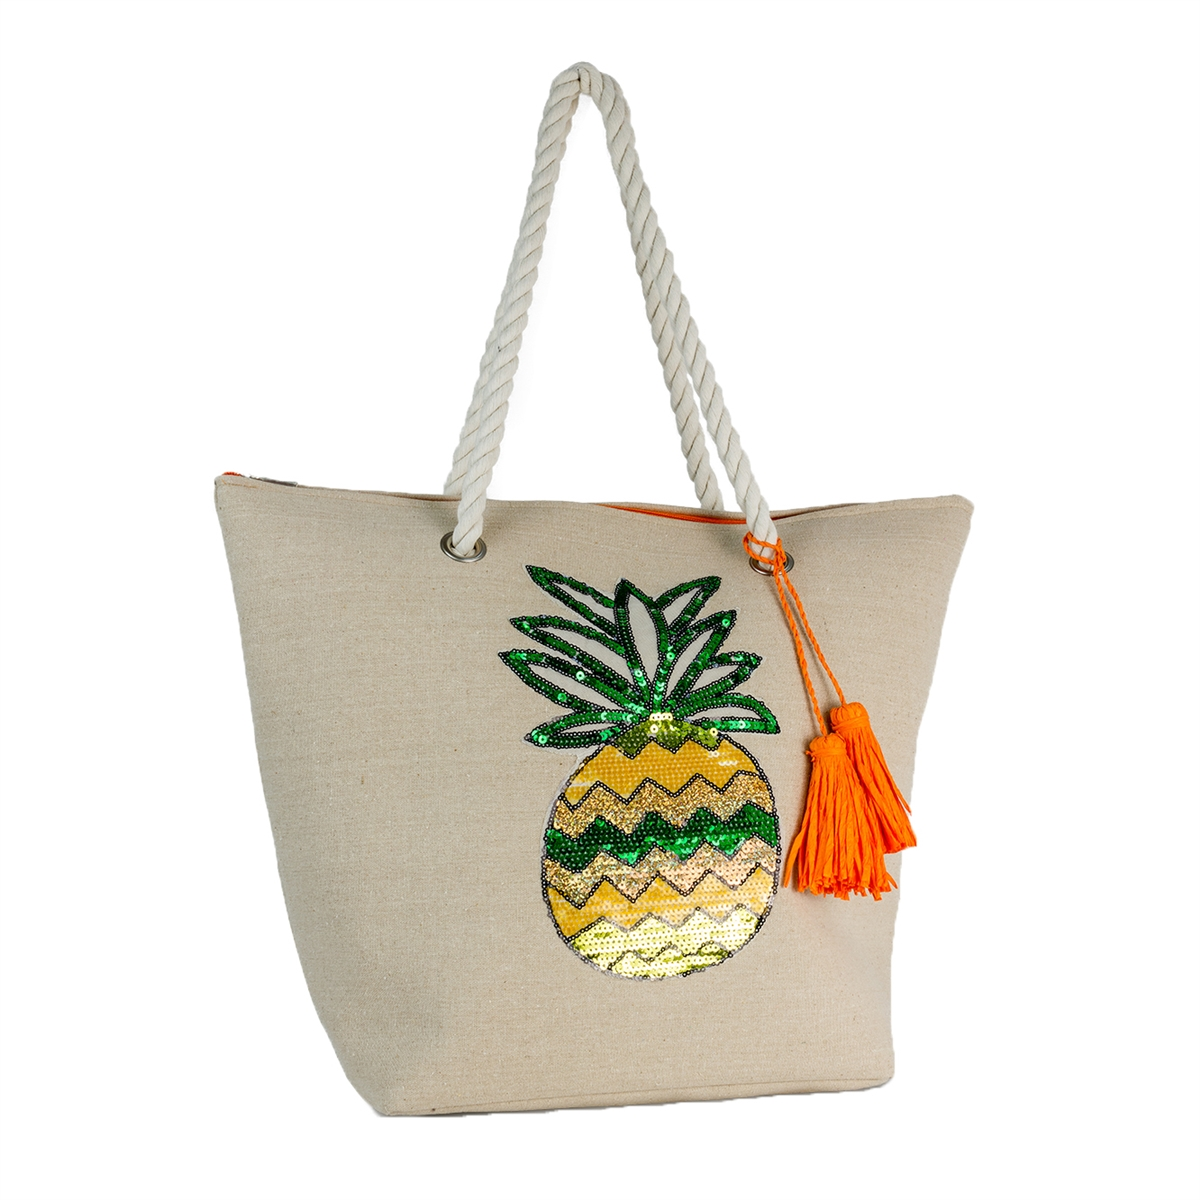 25b58e0af5 Magid Sequin Pineapple Oversized Tote Beach Bag, Natural